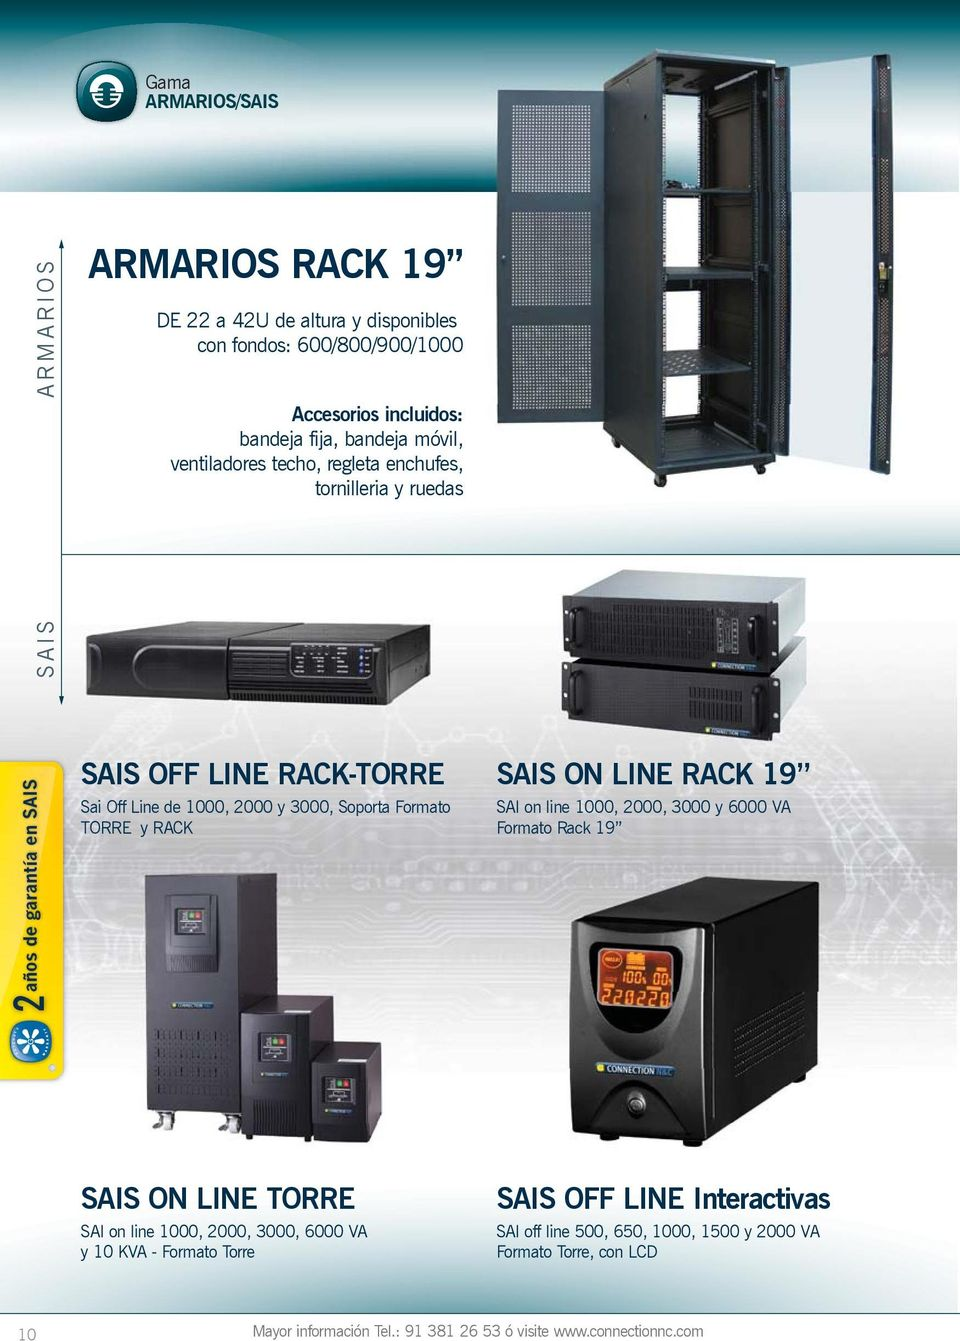 Formato TORR y RACK SAIS ON LIN RACK 19 SAI on line 1000, 2000, 3000 y 6000 VA Formato Rack 19 G SAIS ON LIN TORR SAI on line 1000, 2000, 3000, 6000 VA y 10 KVA -